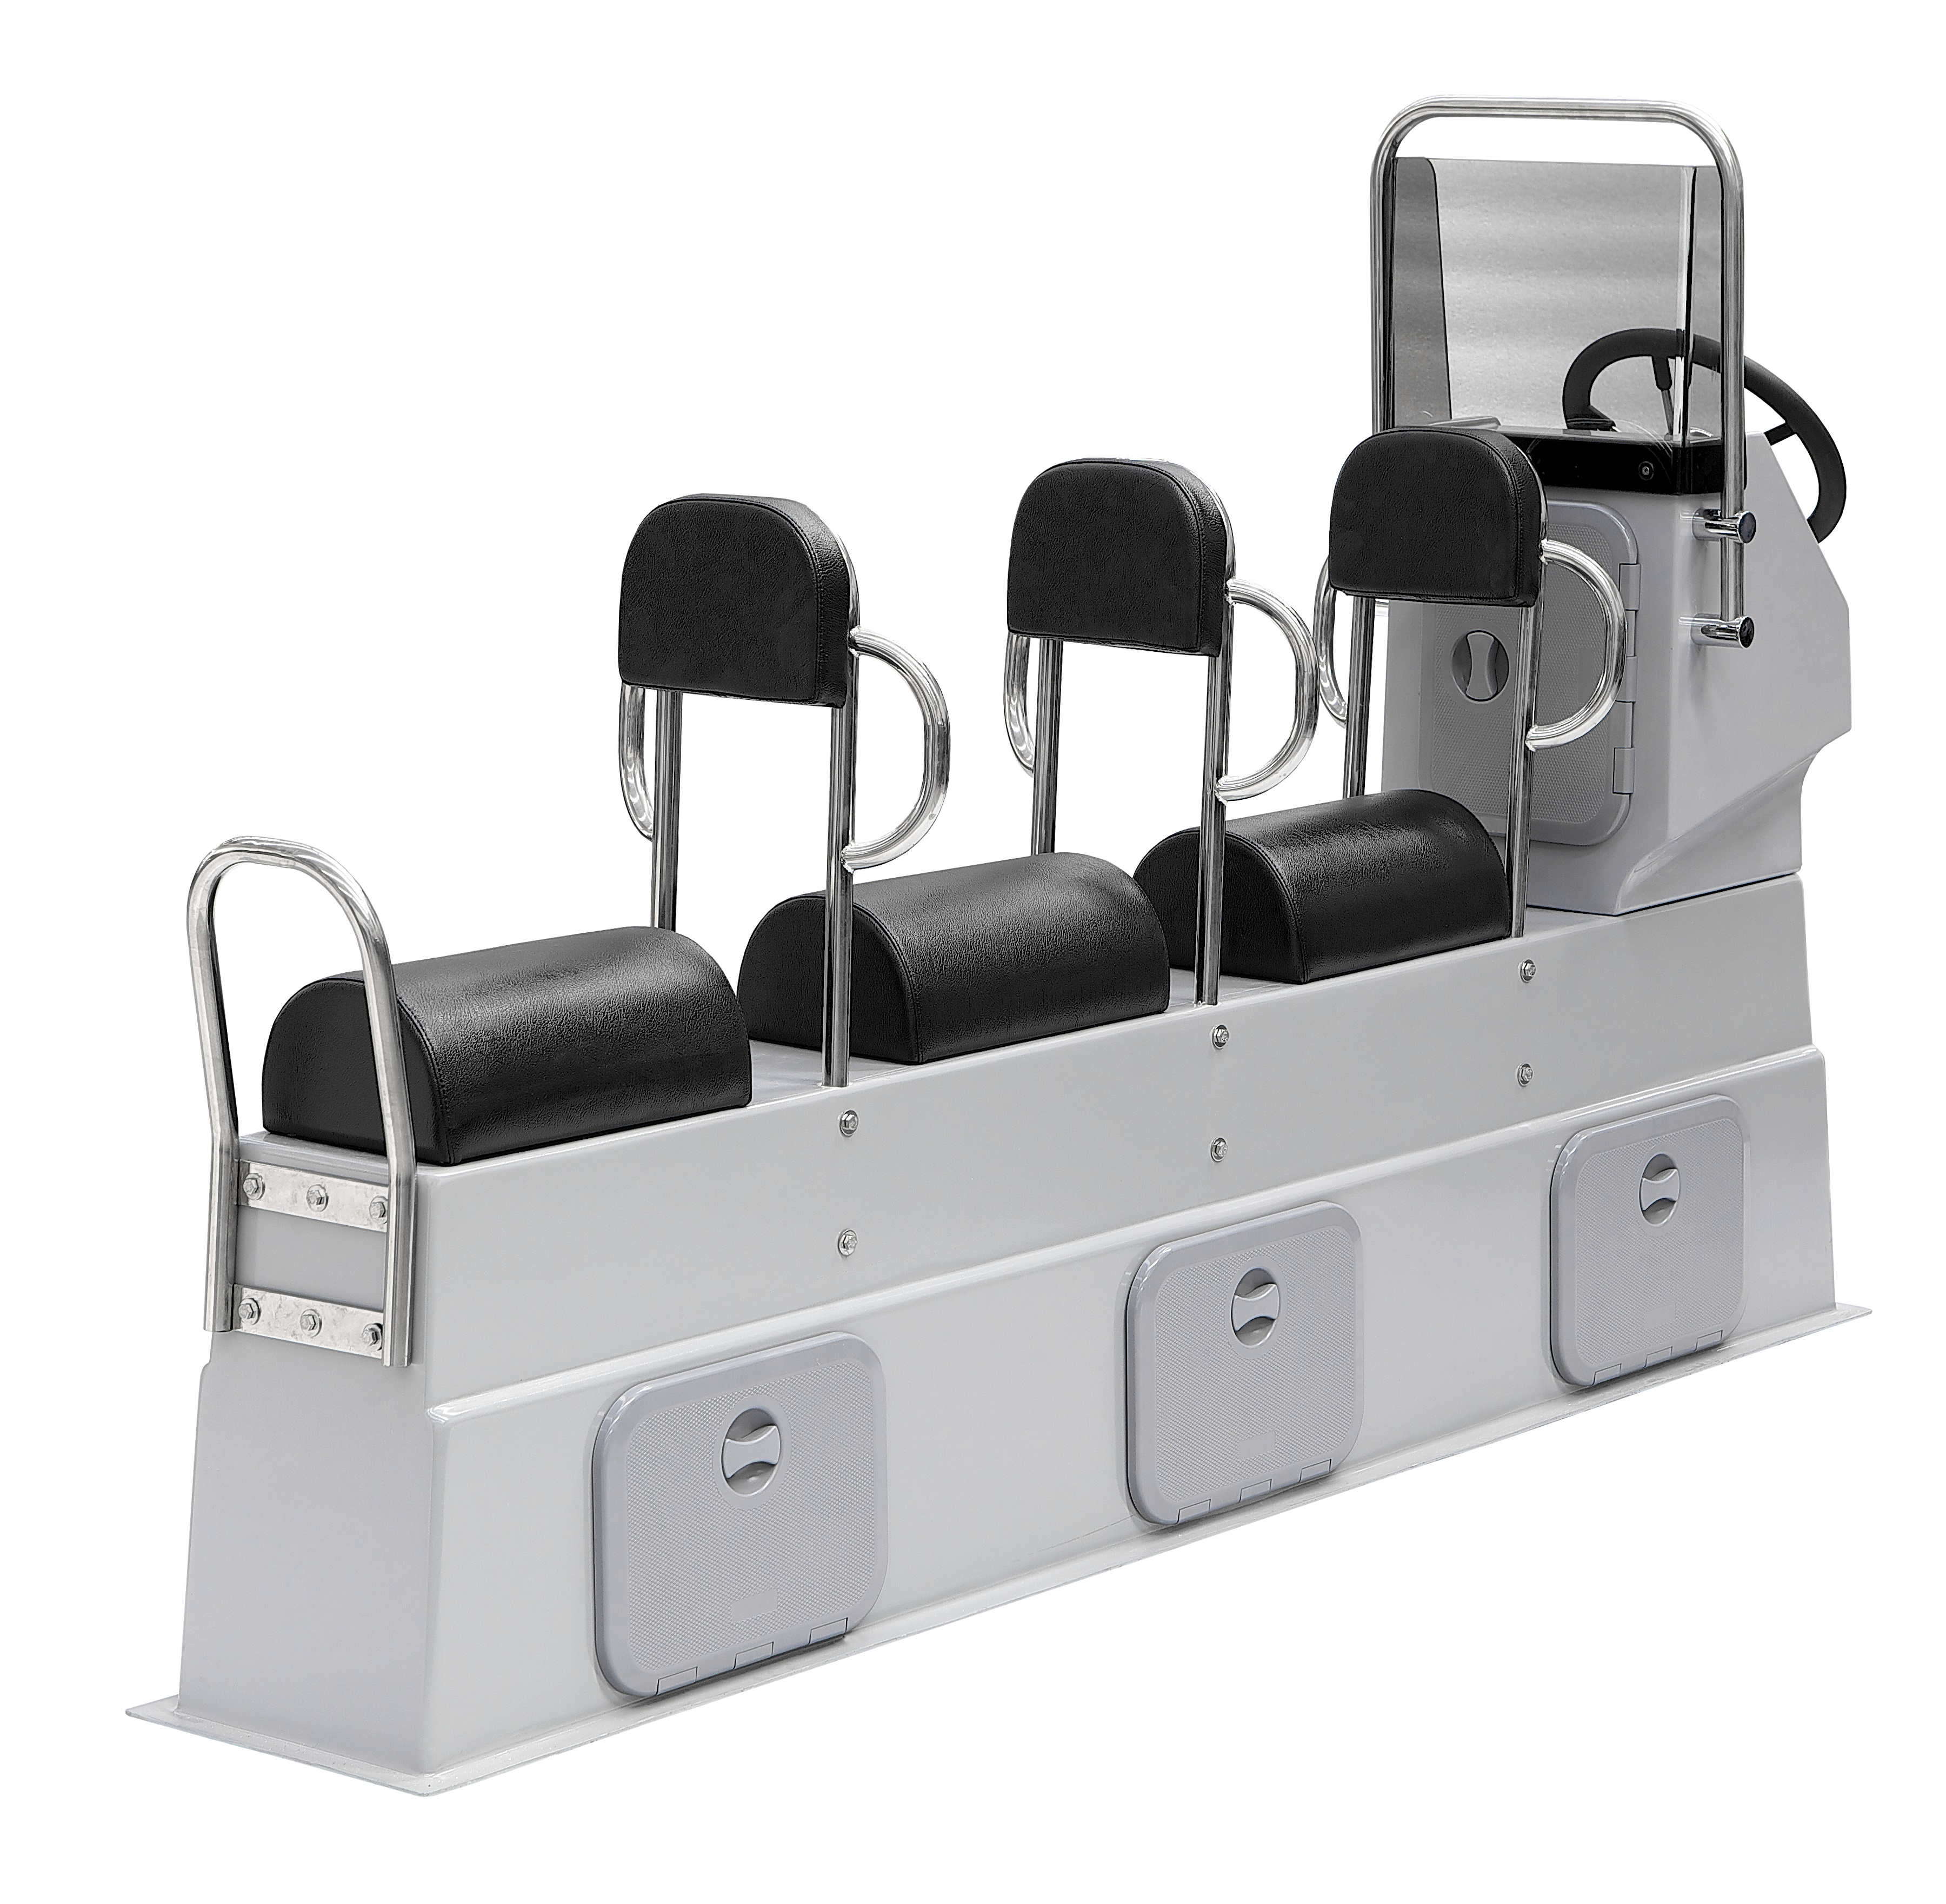 Modular Seat Five Persons